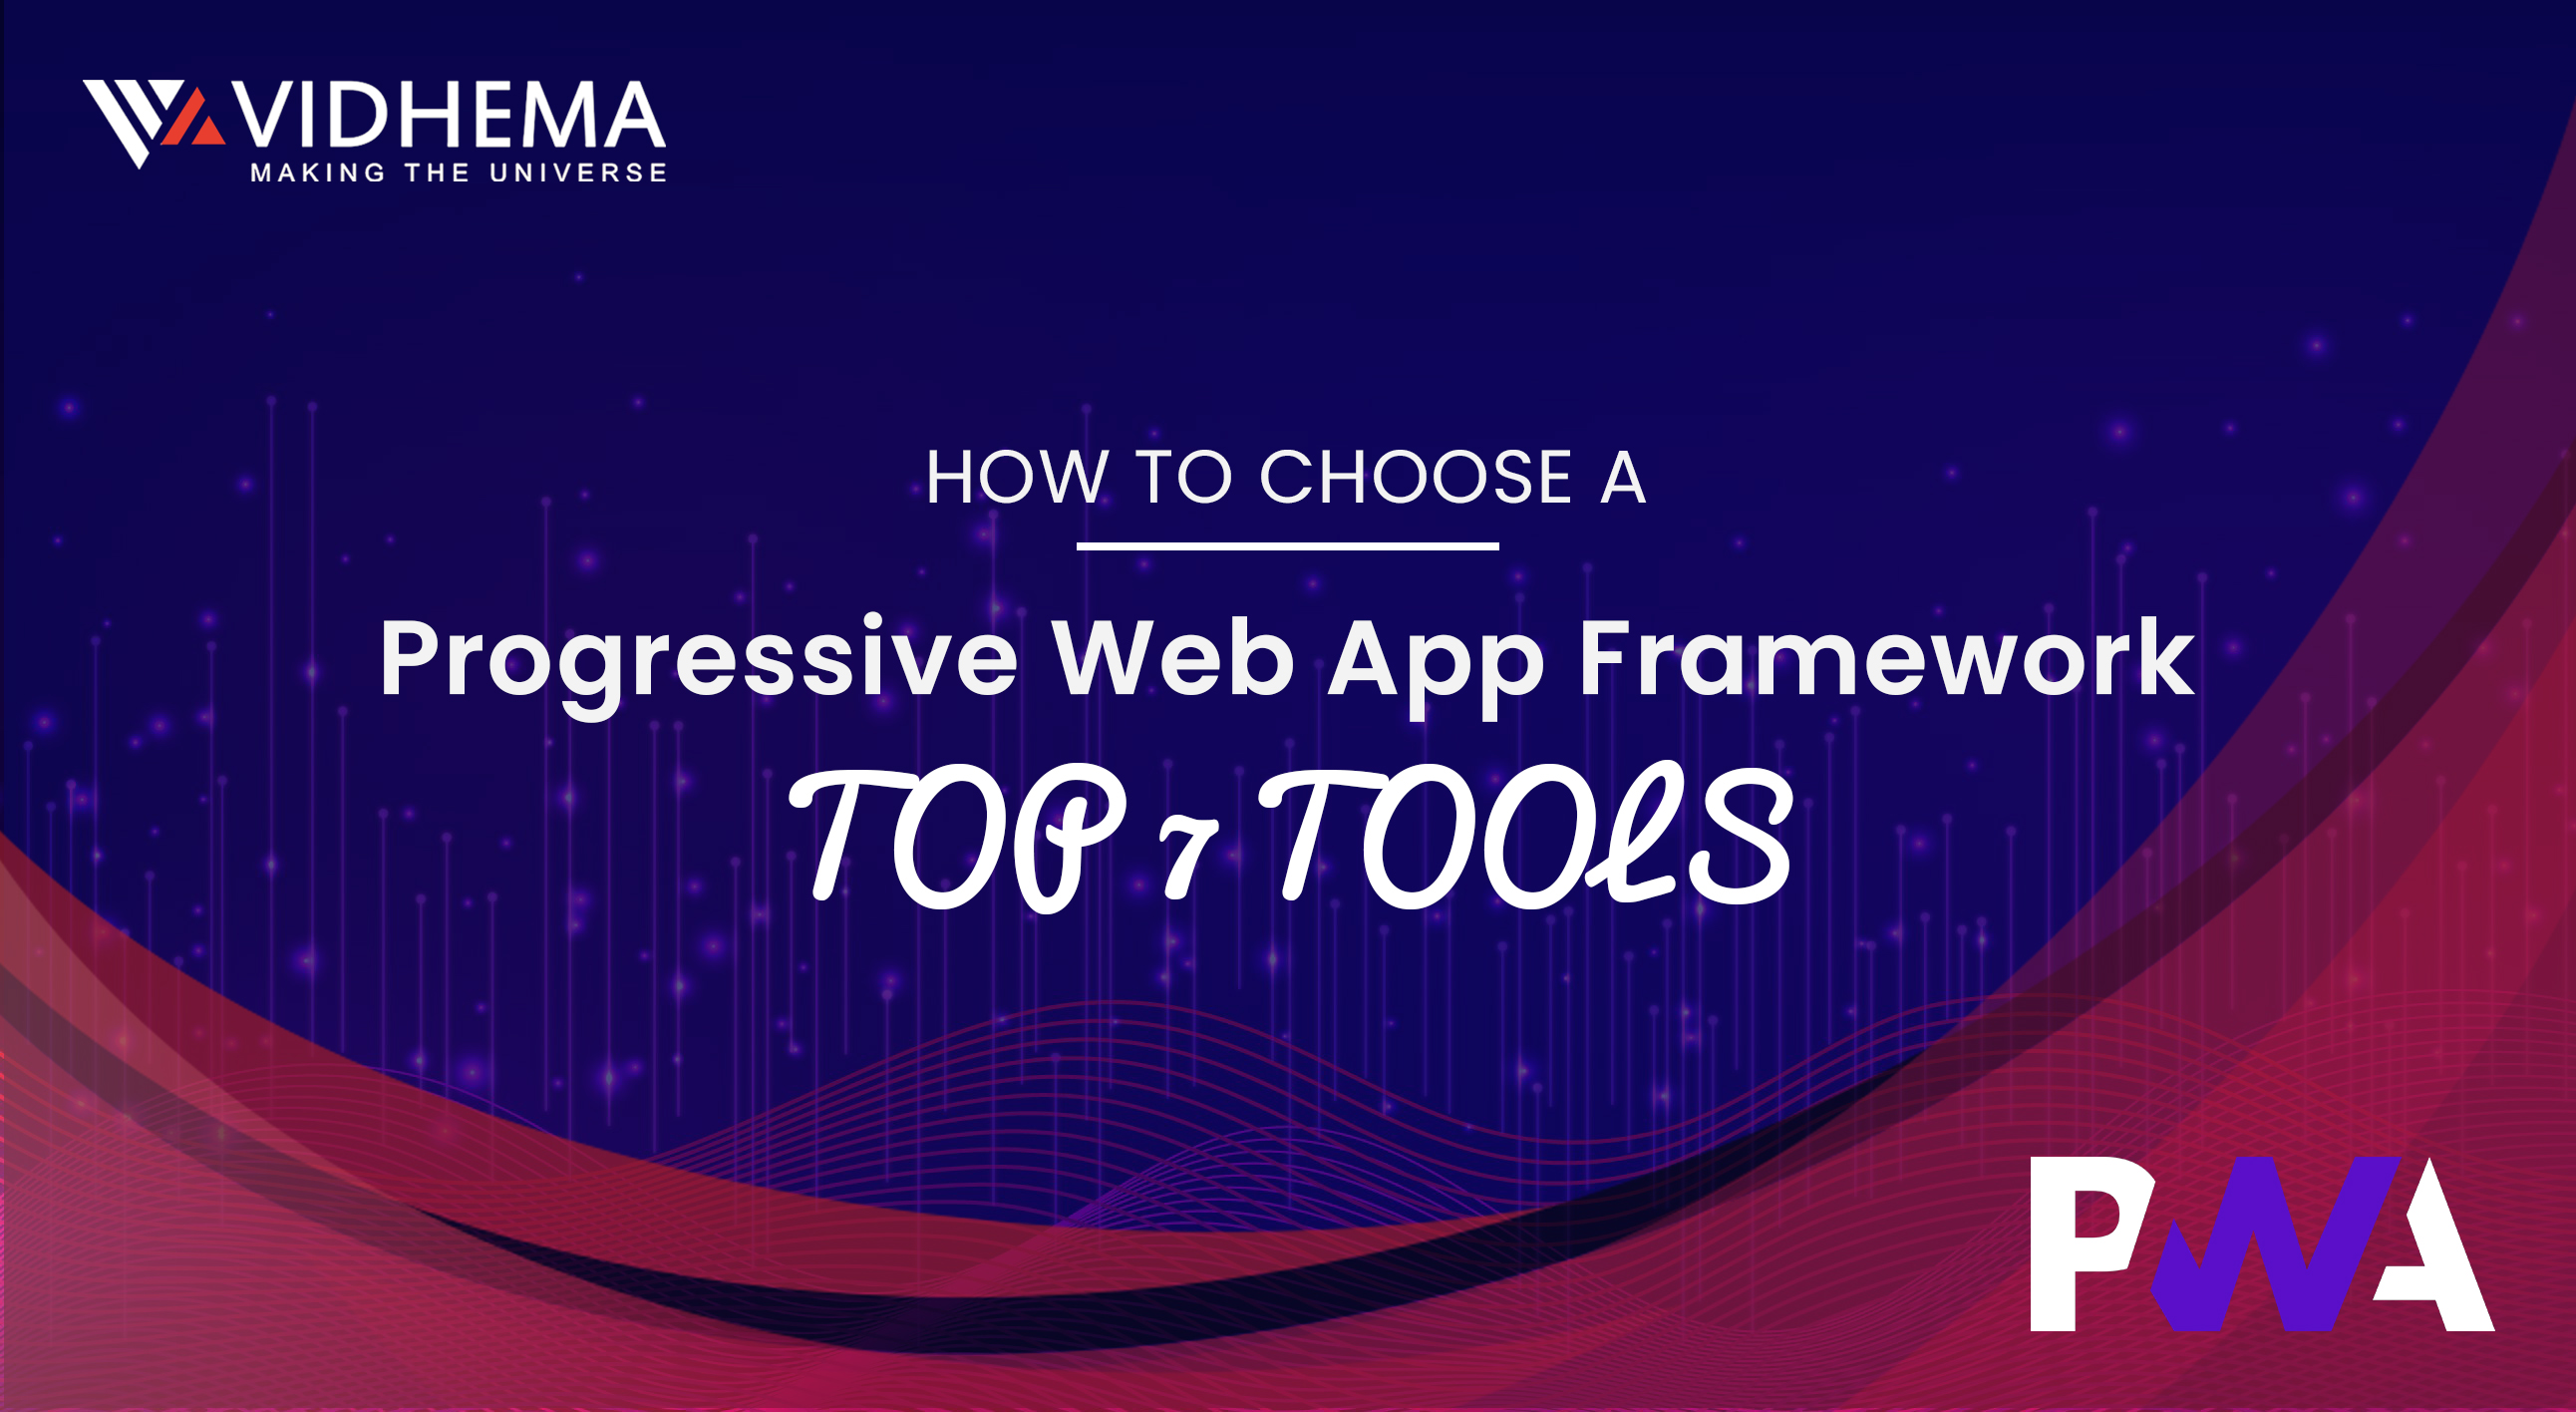 How to Choose a Progressive Web App Framework: Top 7 Tools